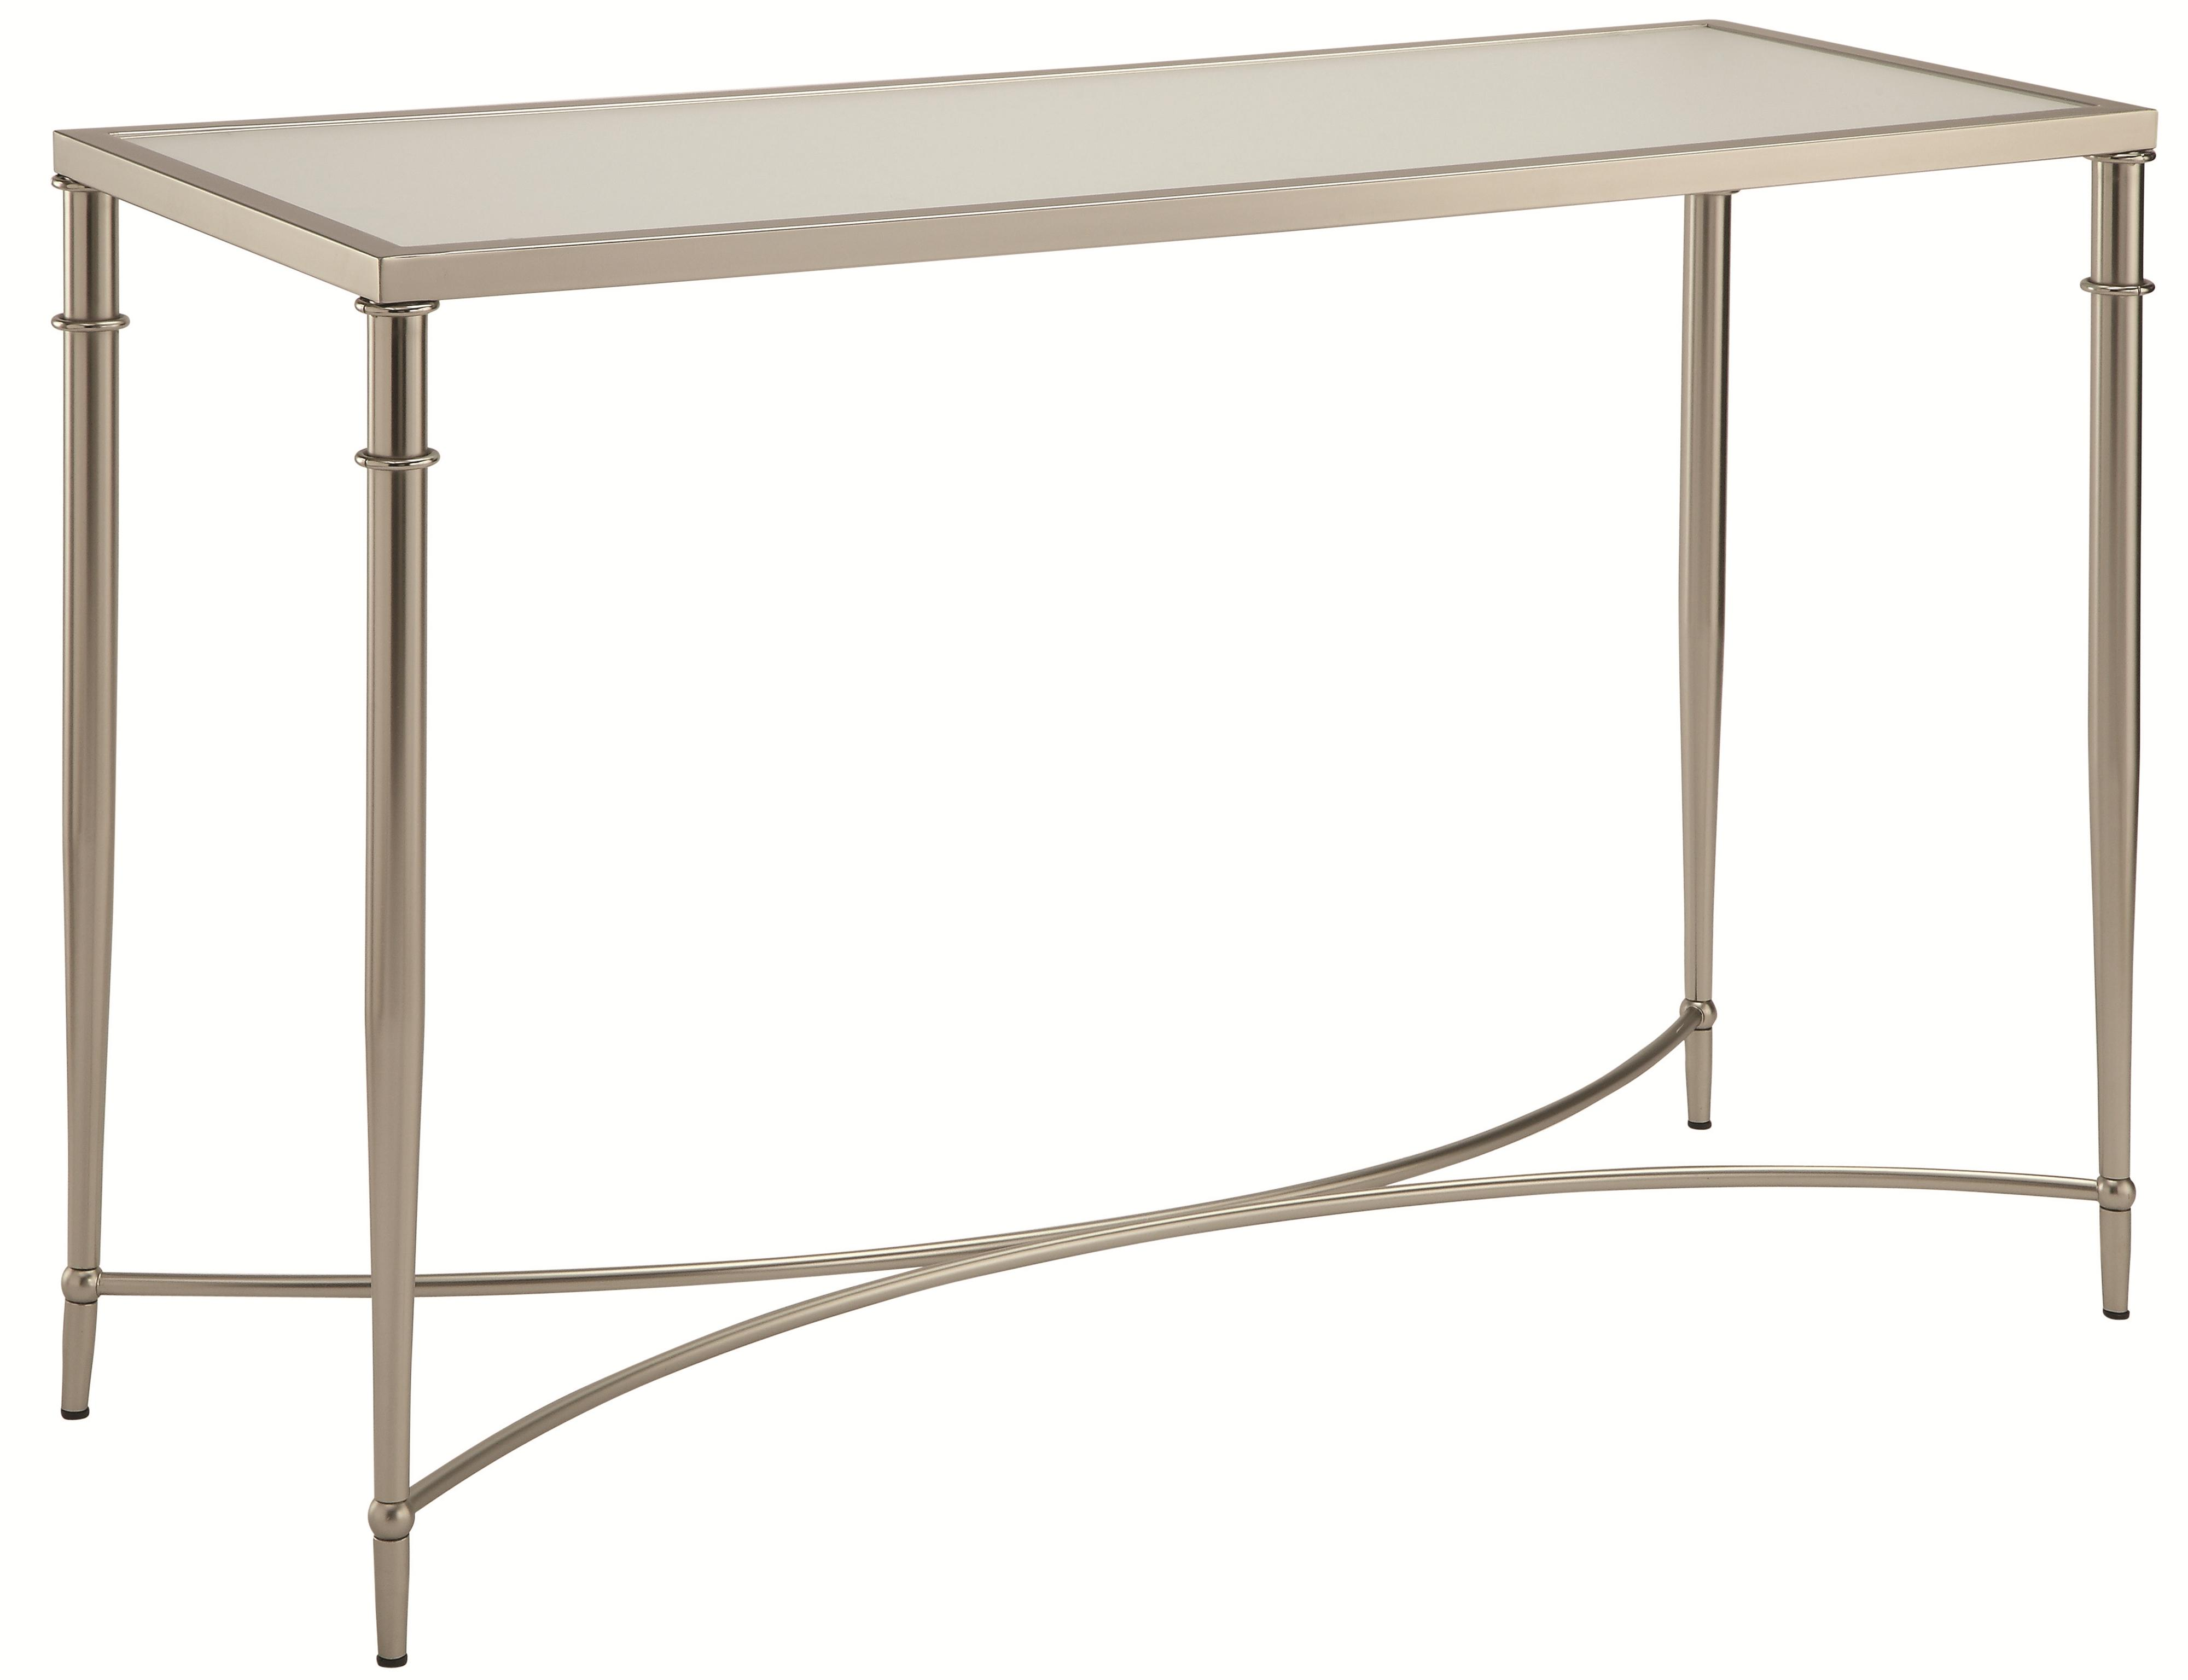 70334 sofa table with metal legs and frosted glass top quality furniture at affordable prices Frosted glass furniture